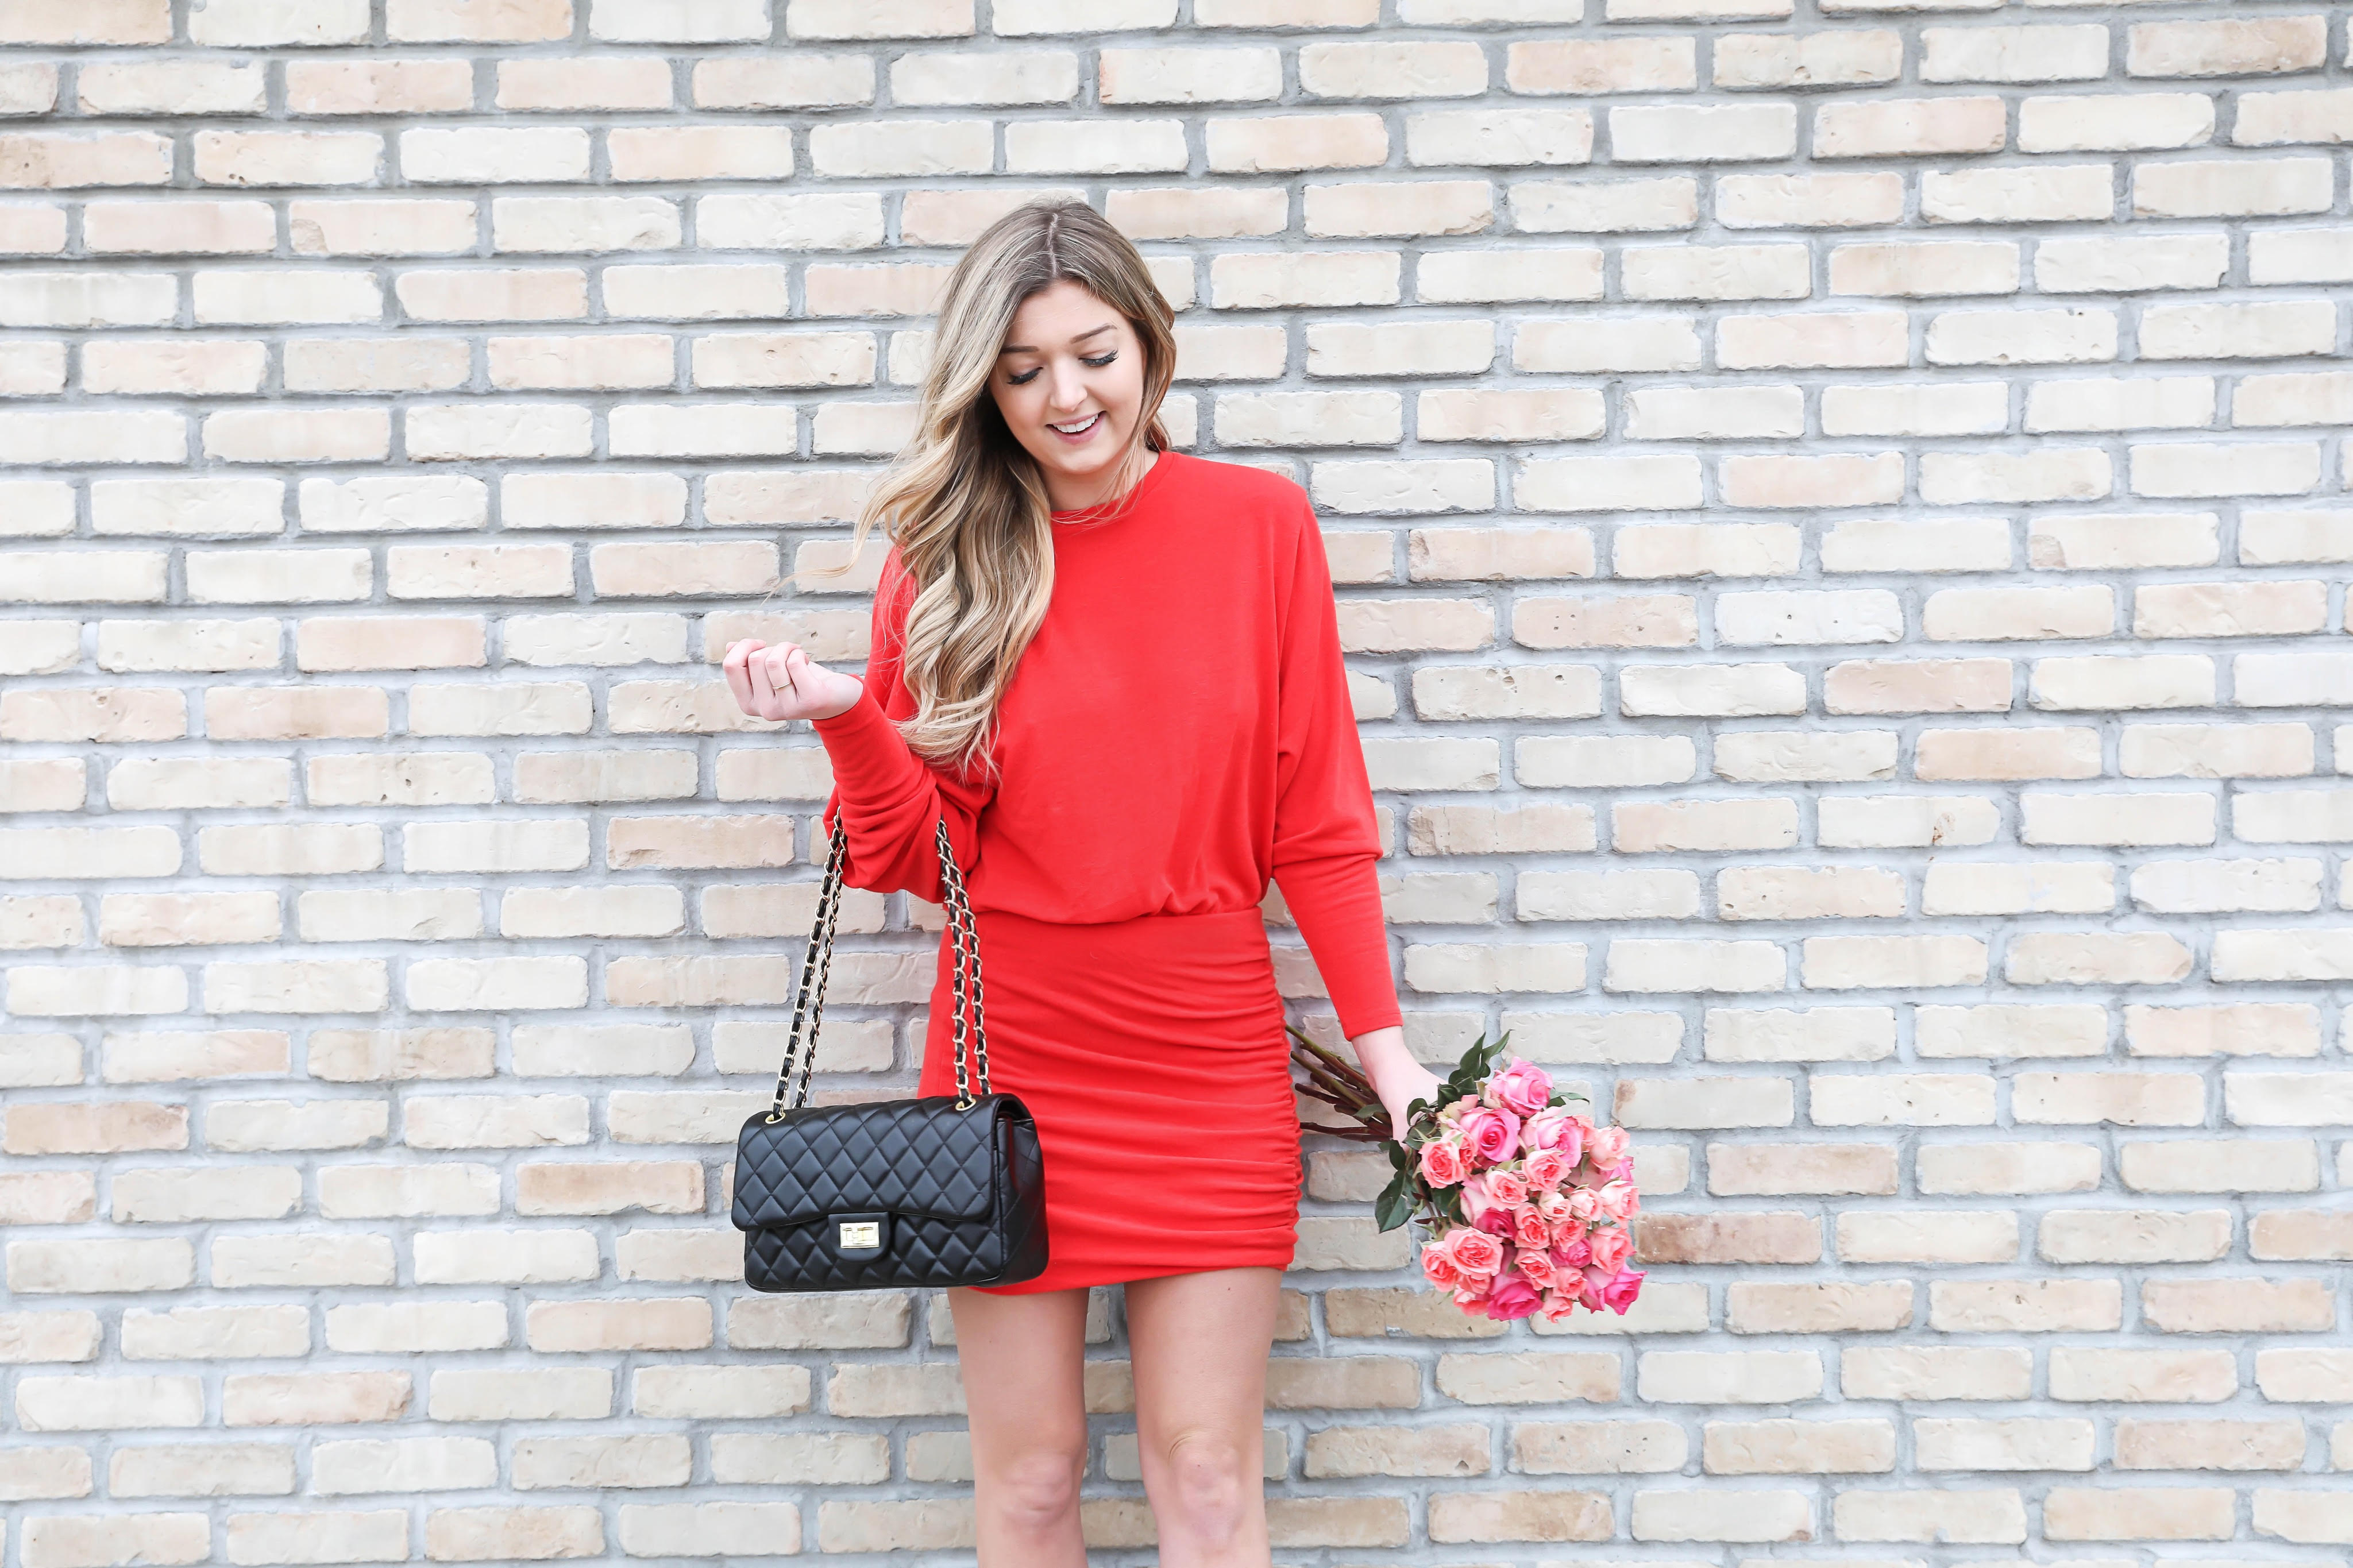 Valentine's Day dress ideas! These are the cutest last minute outfits. Everything from red, pink, white, and black dresses! I tried to include some nice and casual outfits. Dresses from nordstrom, revolve, Red Dress, and more! Details on fashion blog daily dose of charm by lauren lindmark